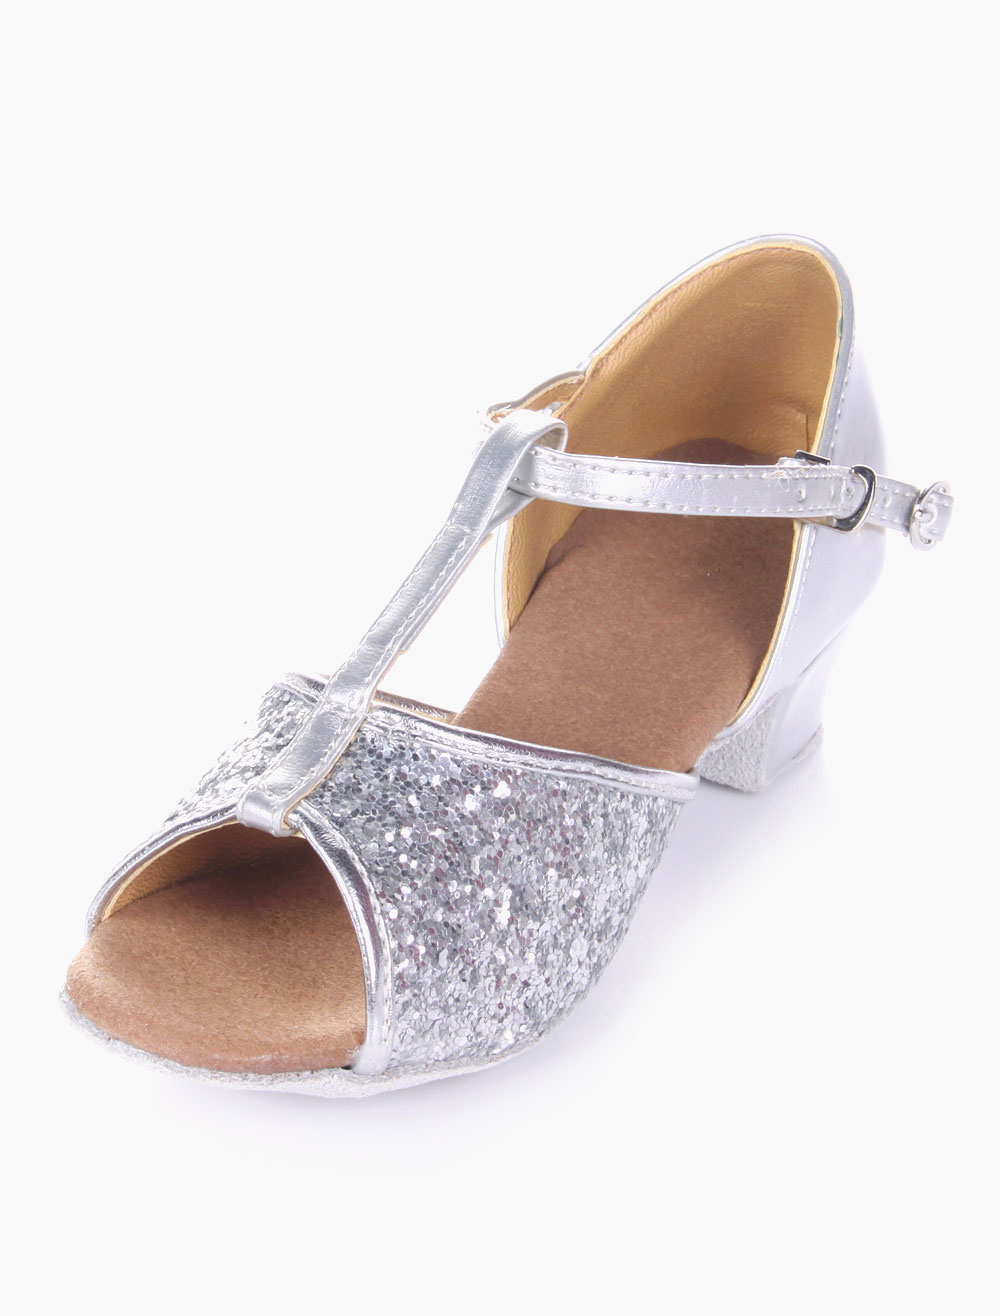 Glitter Ballroom Dance Shoes 2018 Open Toe Soft Sole Latin Dancing Shoes For Kids